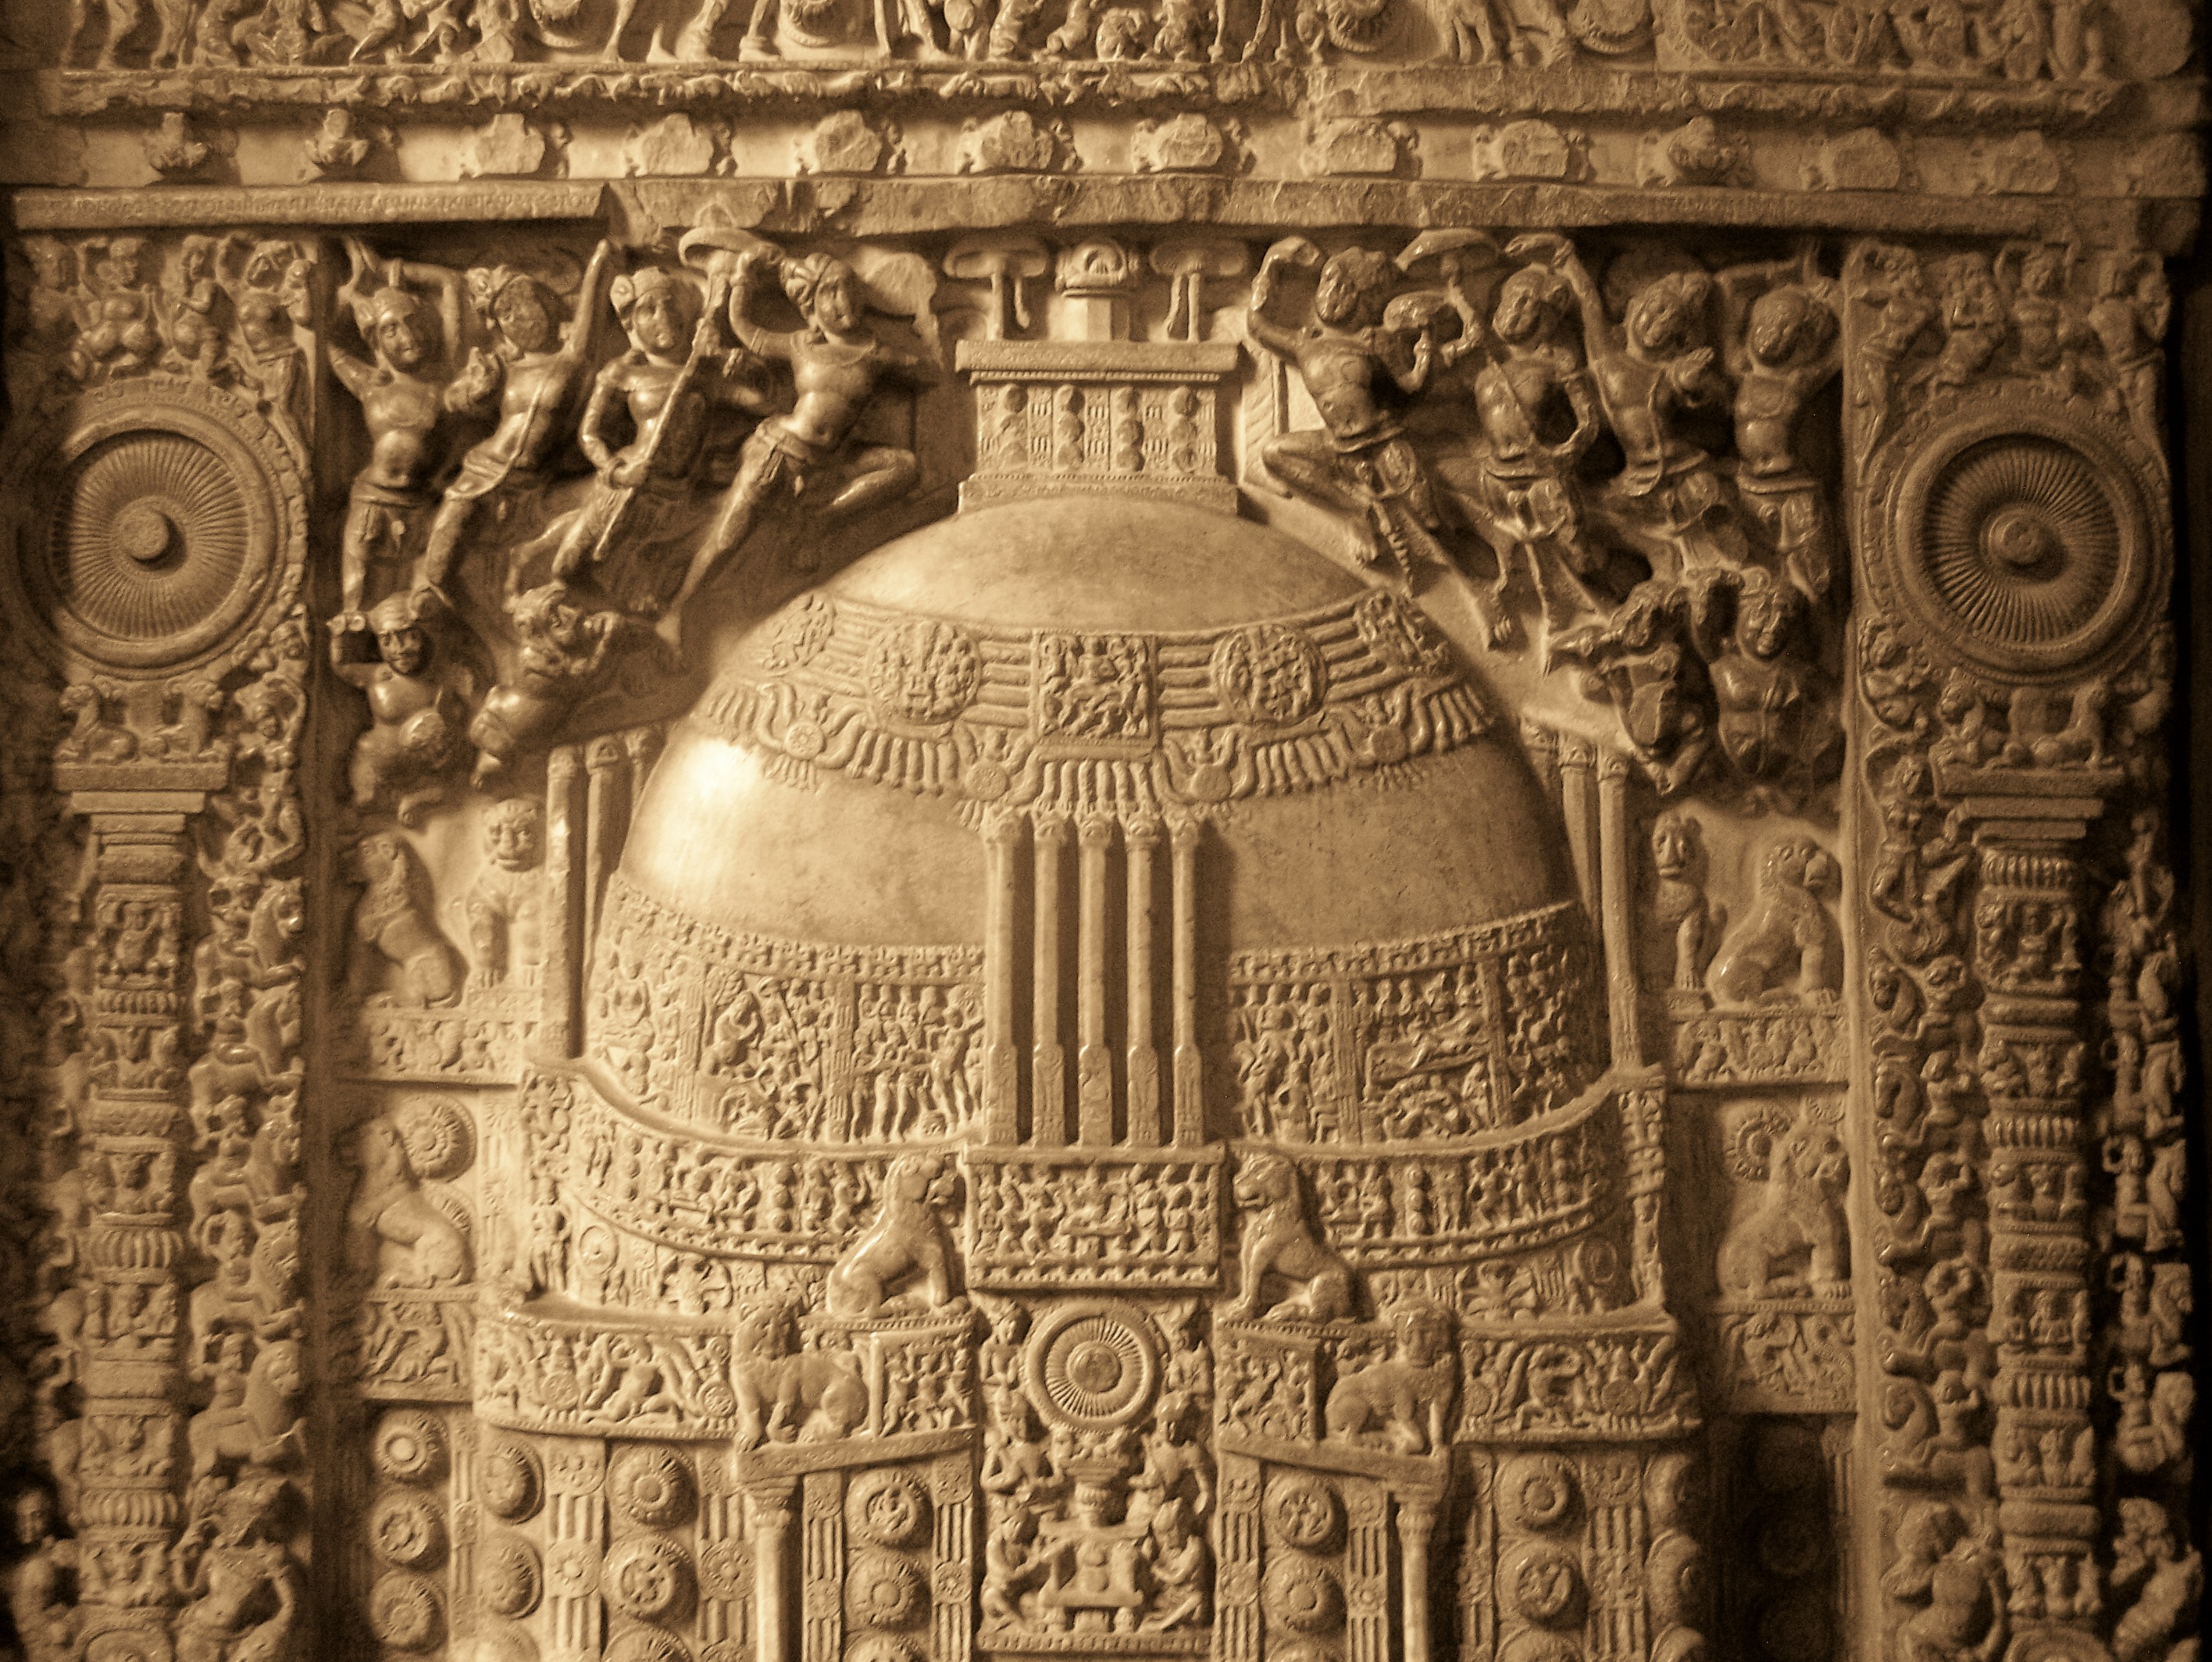 https://i0.wp.com/upload.wikimedia.org/wikipedia/commons/c/ce/Amaravati_Stupa_relief_at_Museum.jpg